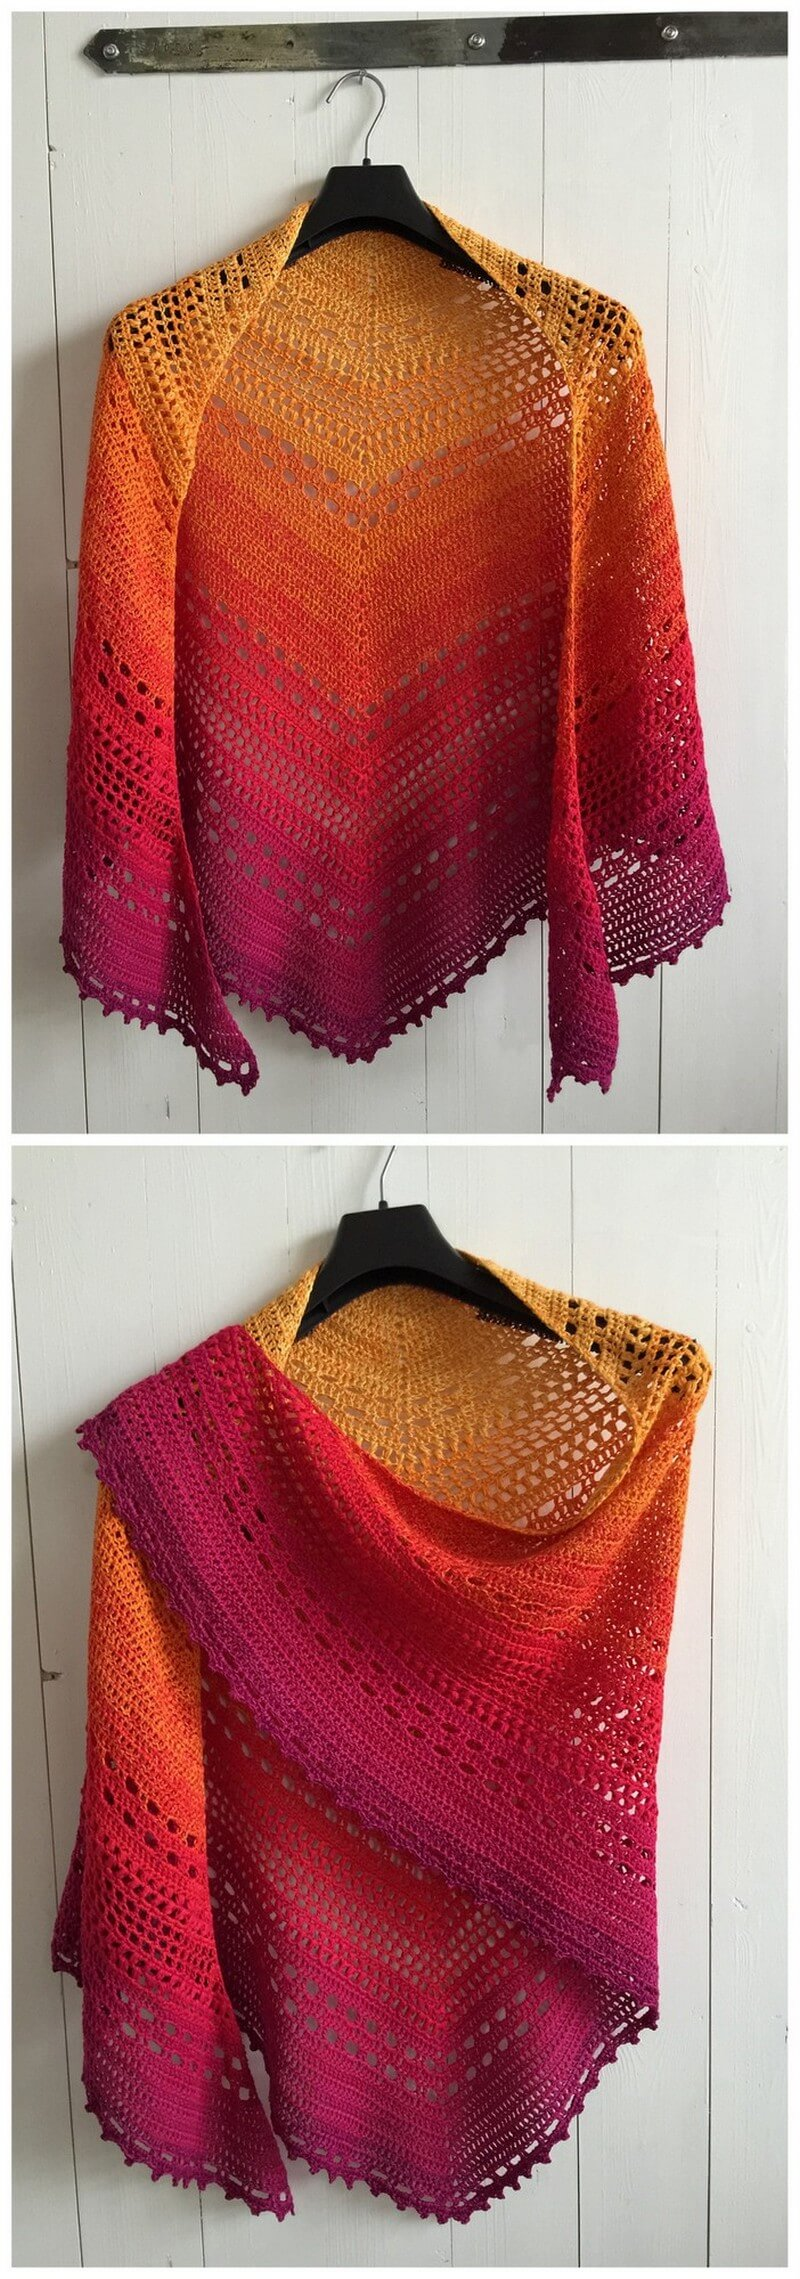 Crochet Shawl Pattern (1)